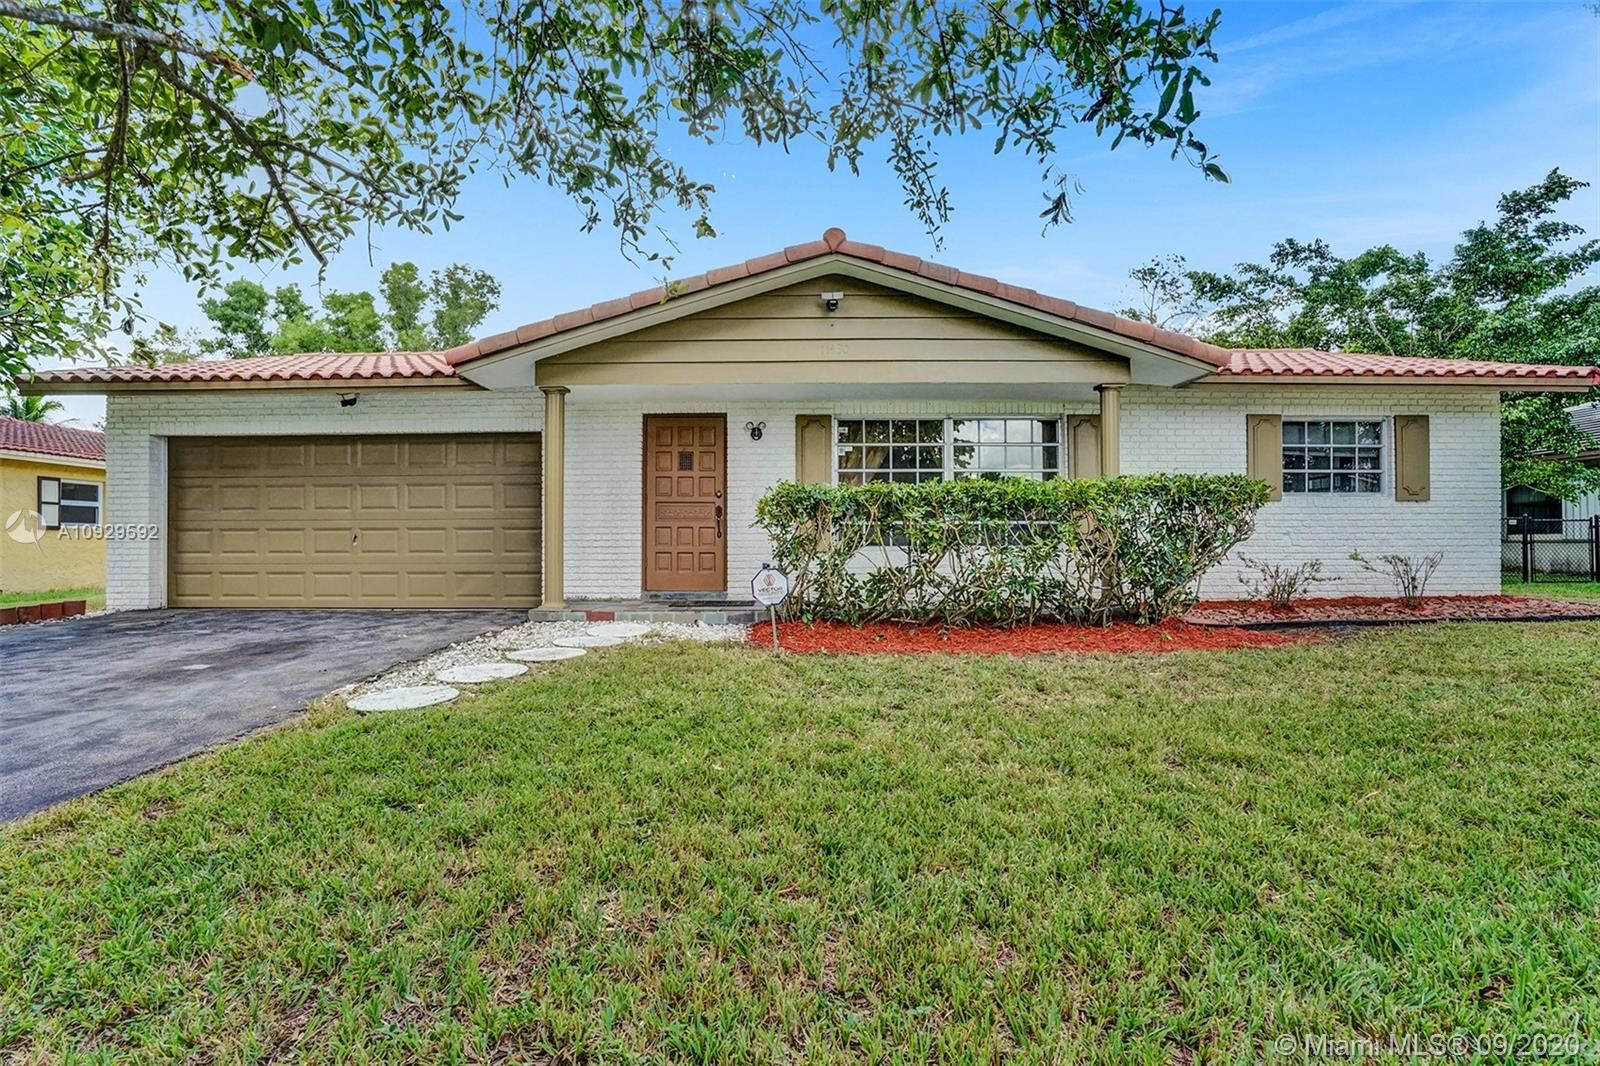 11430 NW 37th St, Coral Springs, FL 33065 - #: A10929592